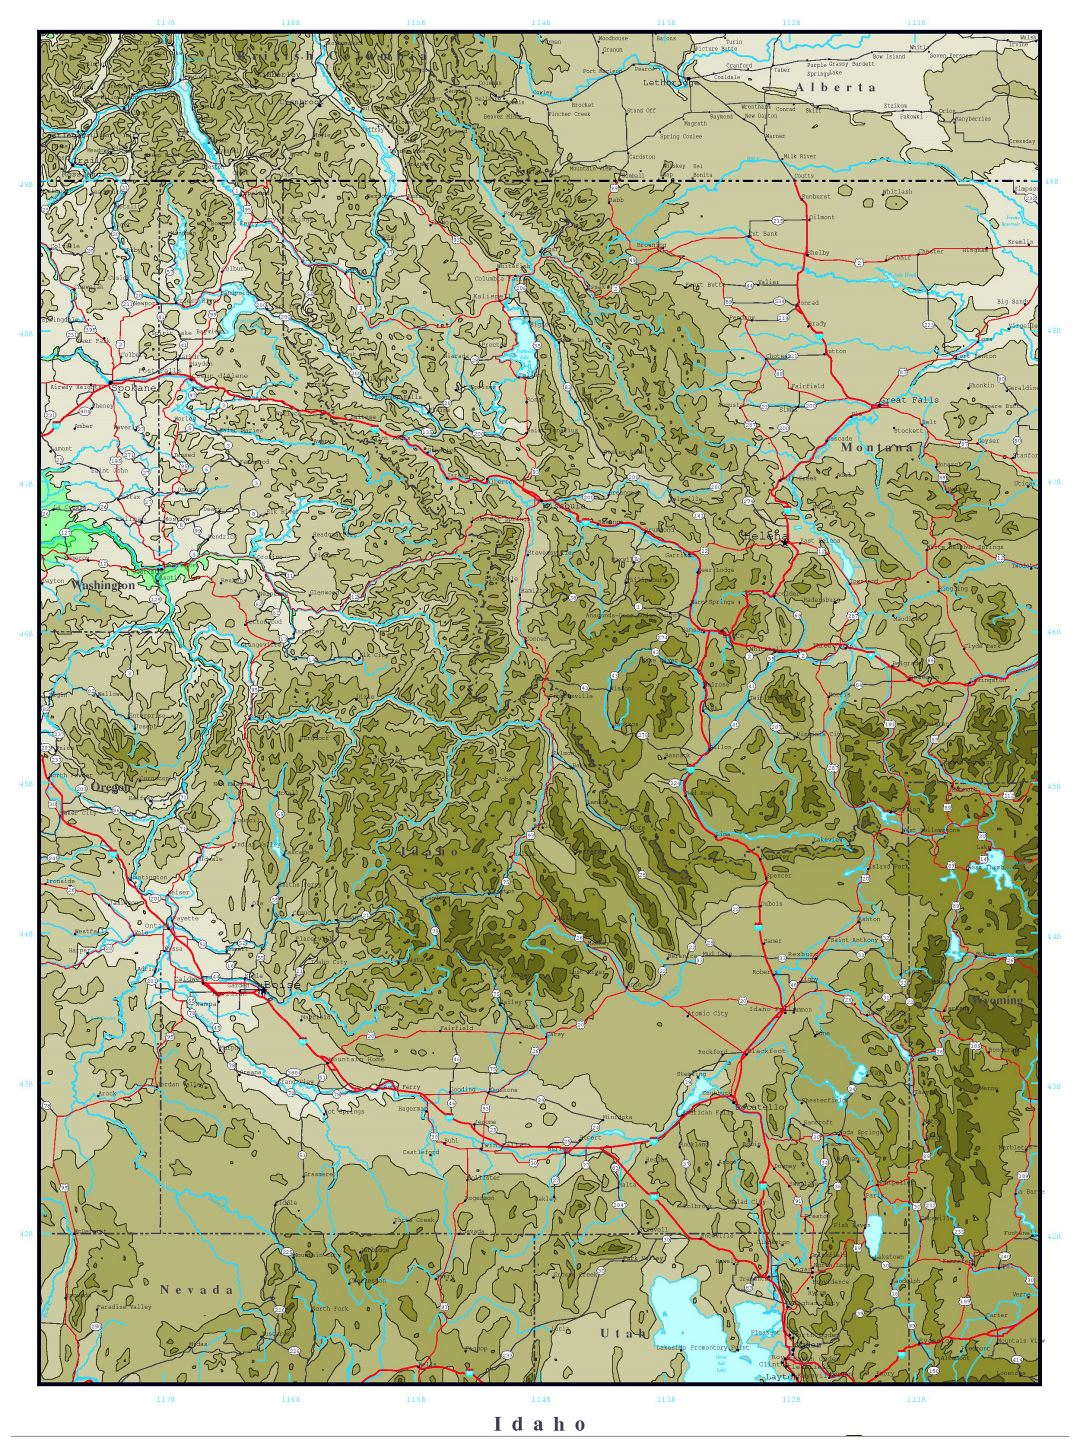 Large detailed elevation map of Idaho state with roads, highways and cities